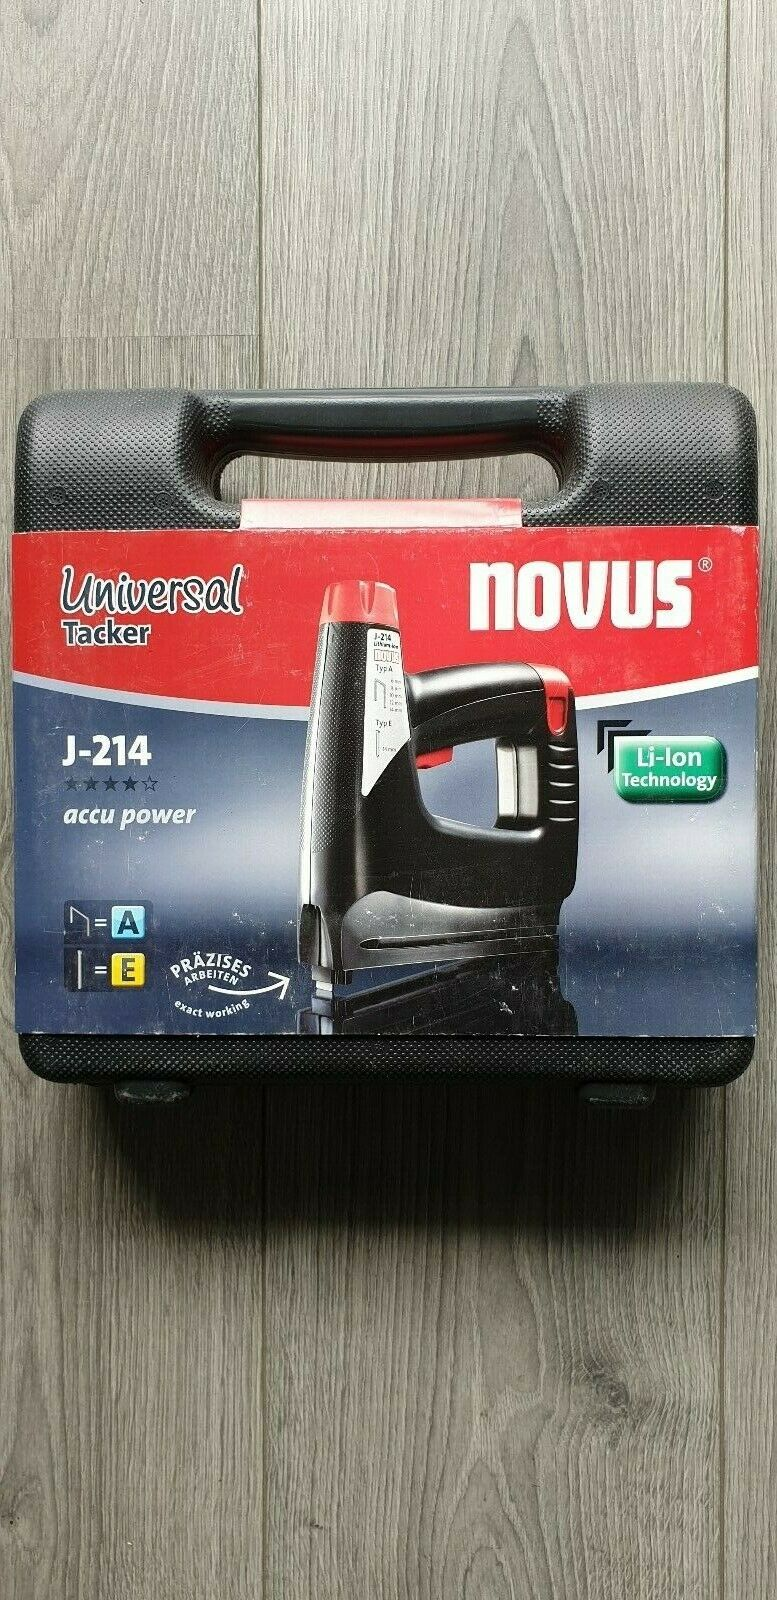 Novus Elektrotacker J-214 Universal accu power tacker.